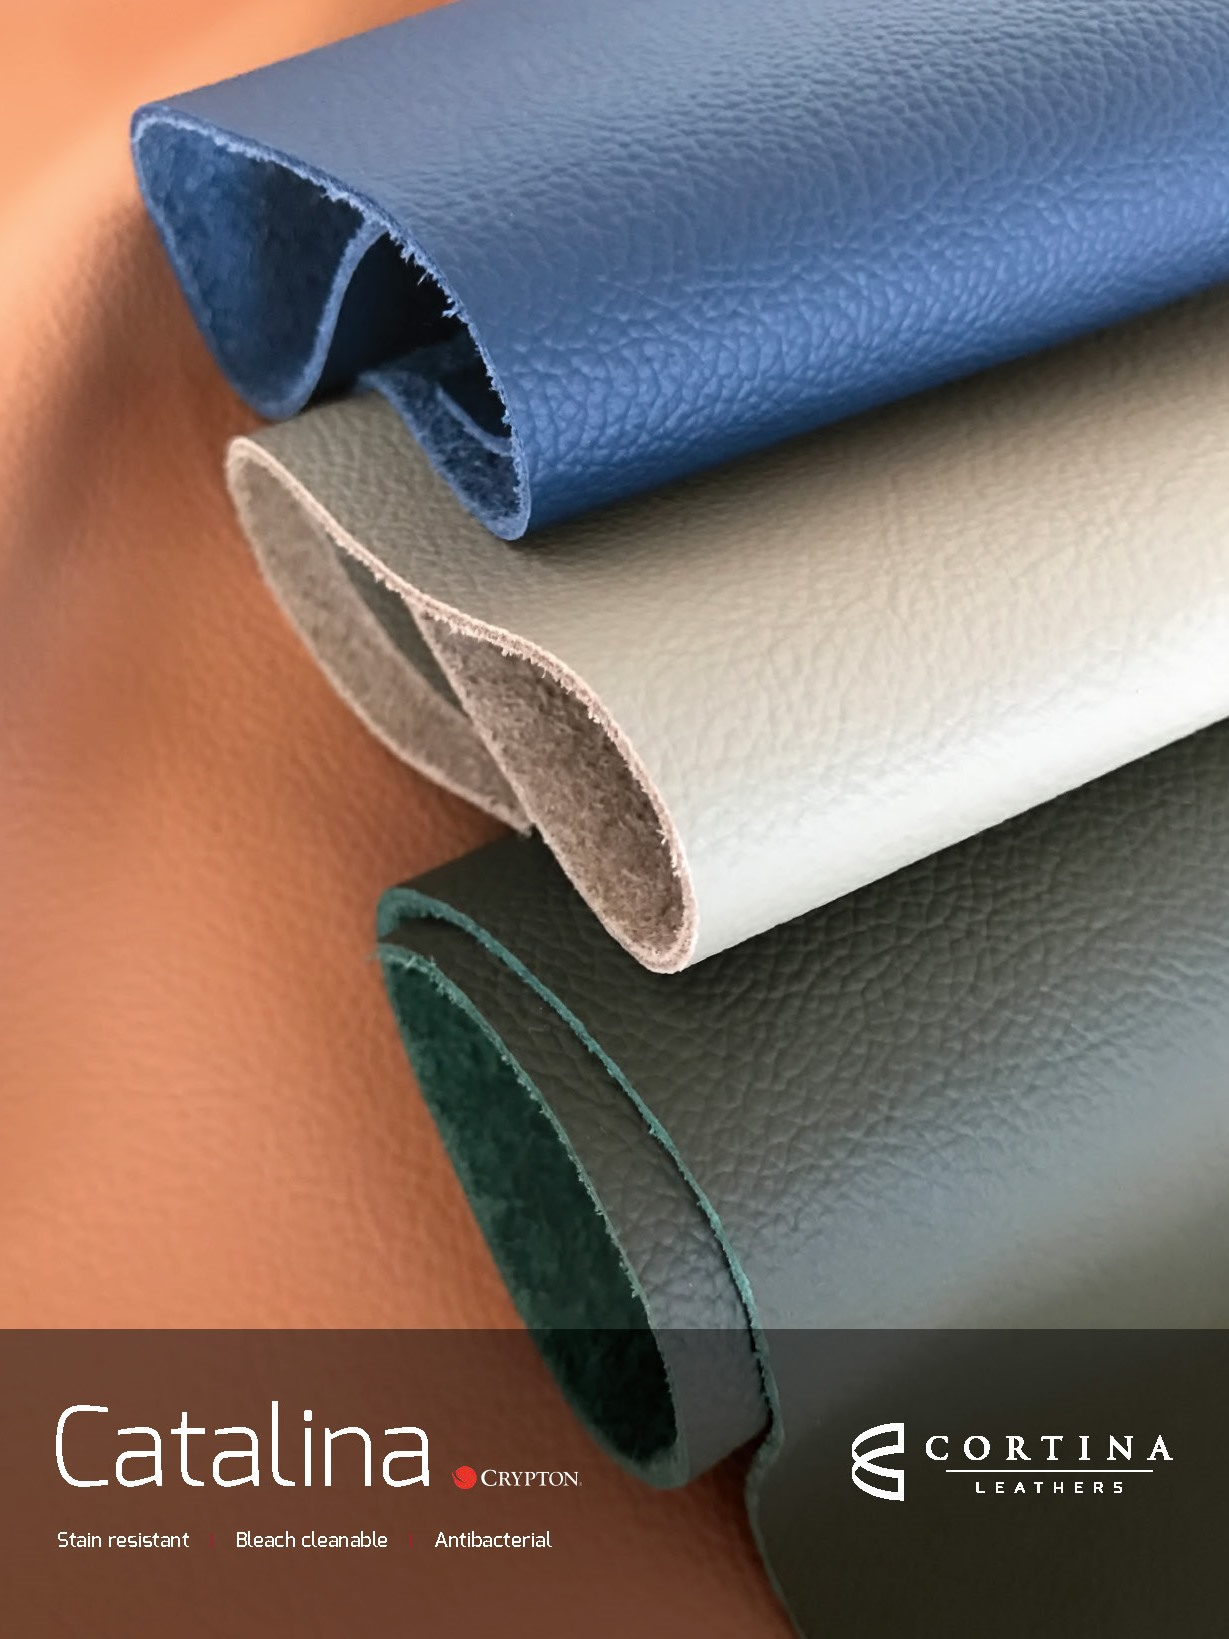 Catalina Leather